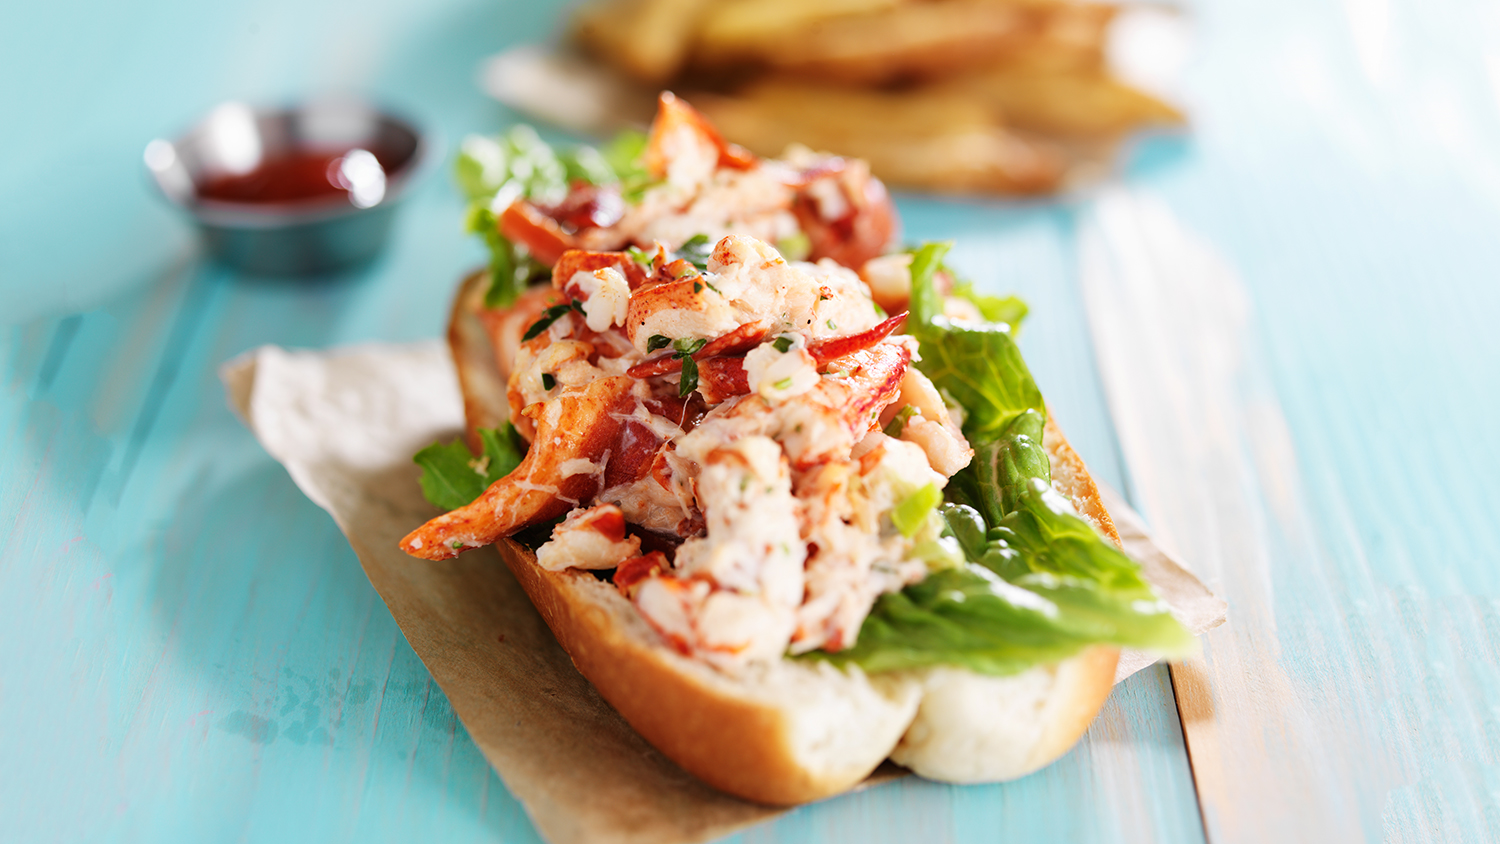 Maine Lobster Catches Are Down, But So Are Prices